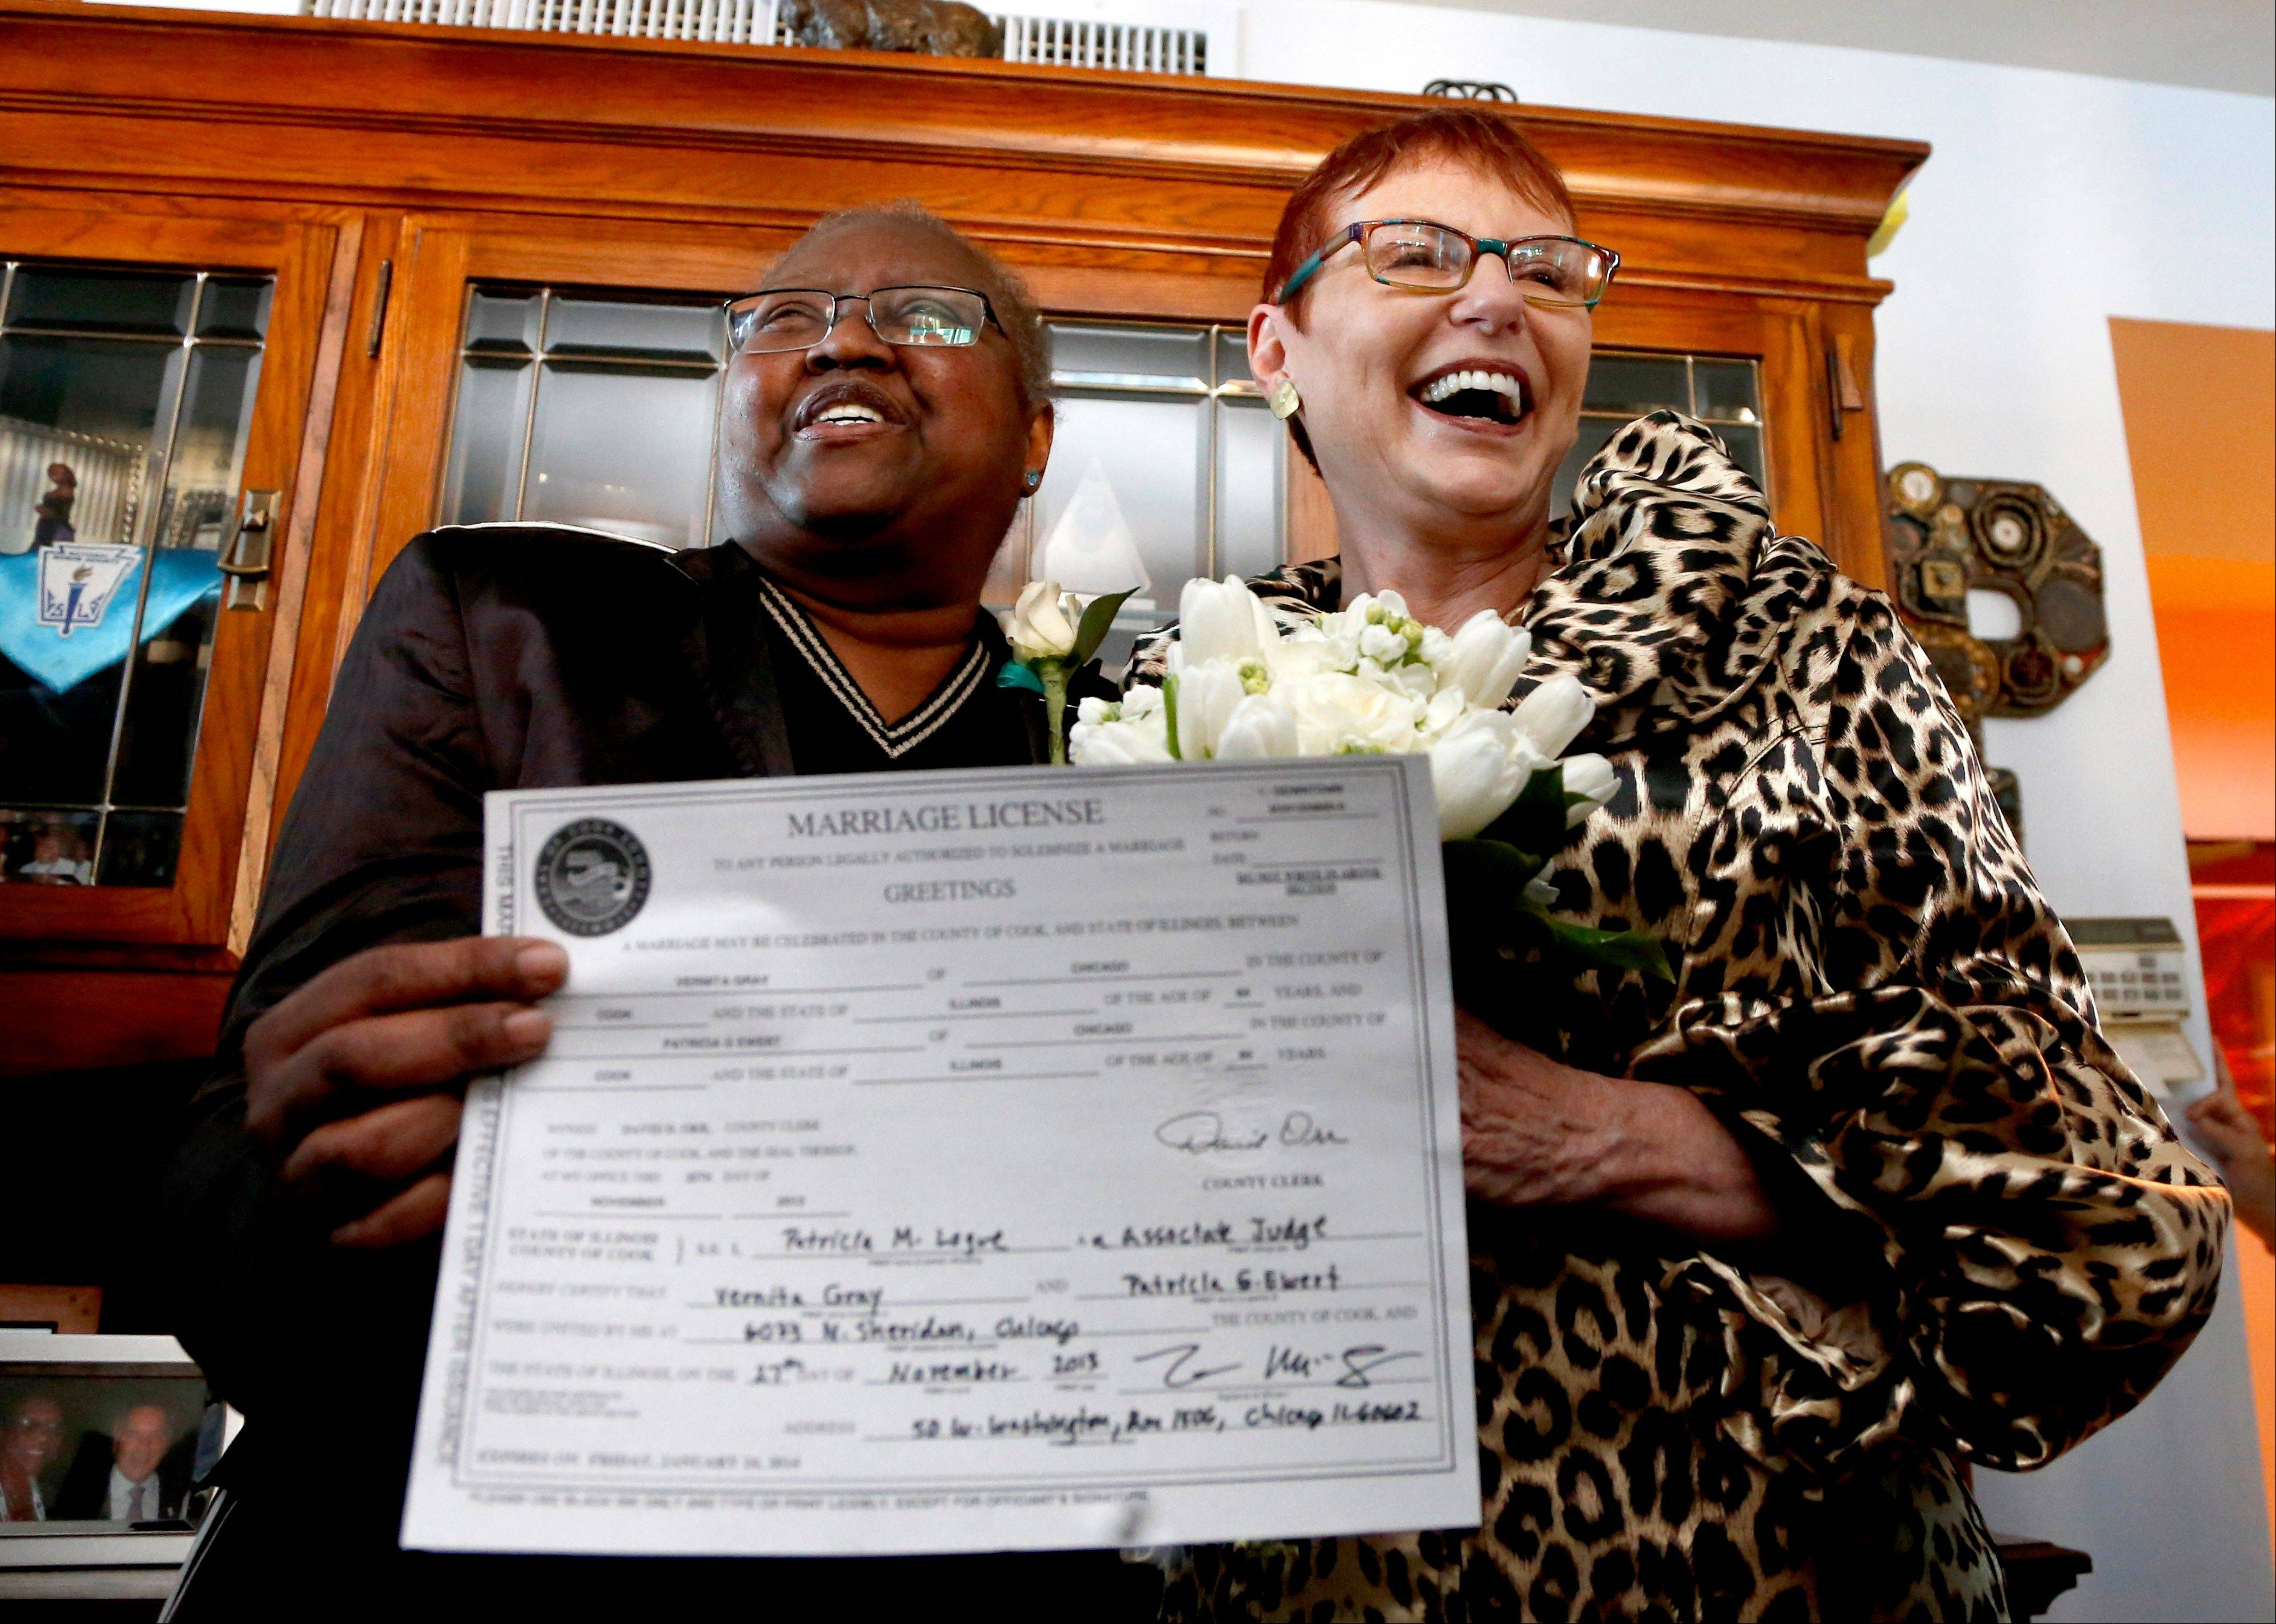 In this Nov. 27, 2013 file photo, Vernita Gray, left, and Patricia Ewert smile at friends after they were married in Chicago by Cook County Judge Patricia Logue, the first gay marriage in Illinois. A judge ordered the Cook County clerk to issue an expedited marriage license to Gray and Ewert before the state's gay marriage law takes effect in June 2014, because Gray is terminally ill. The story on the Illinois General Assembly approving the gay-marriage bill was voted as one of the top 10 stories in the state for 2013.